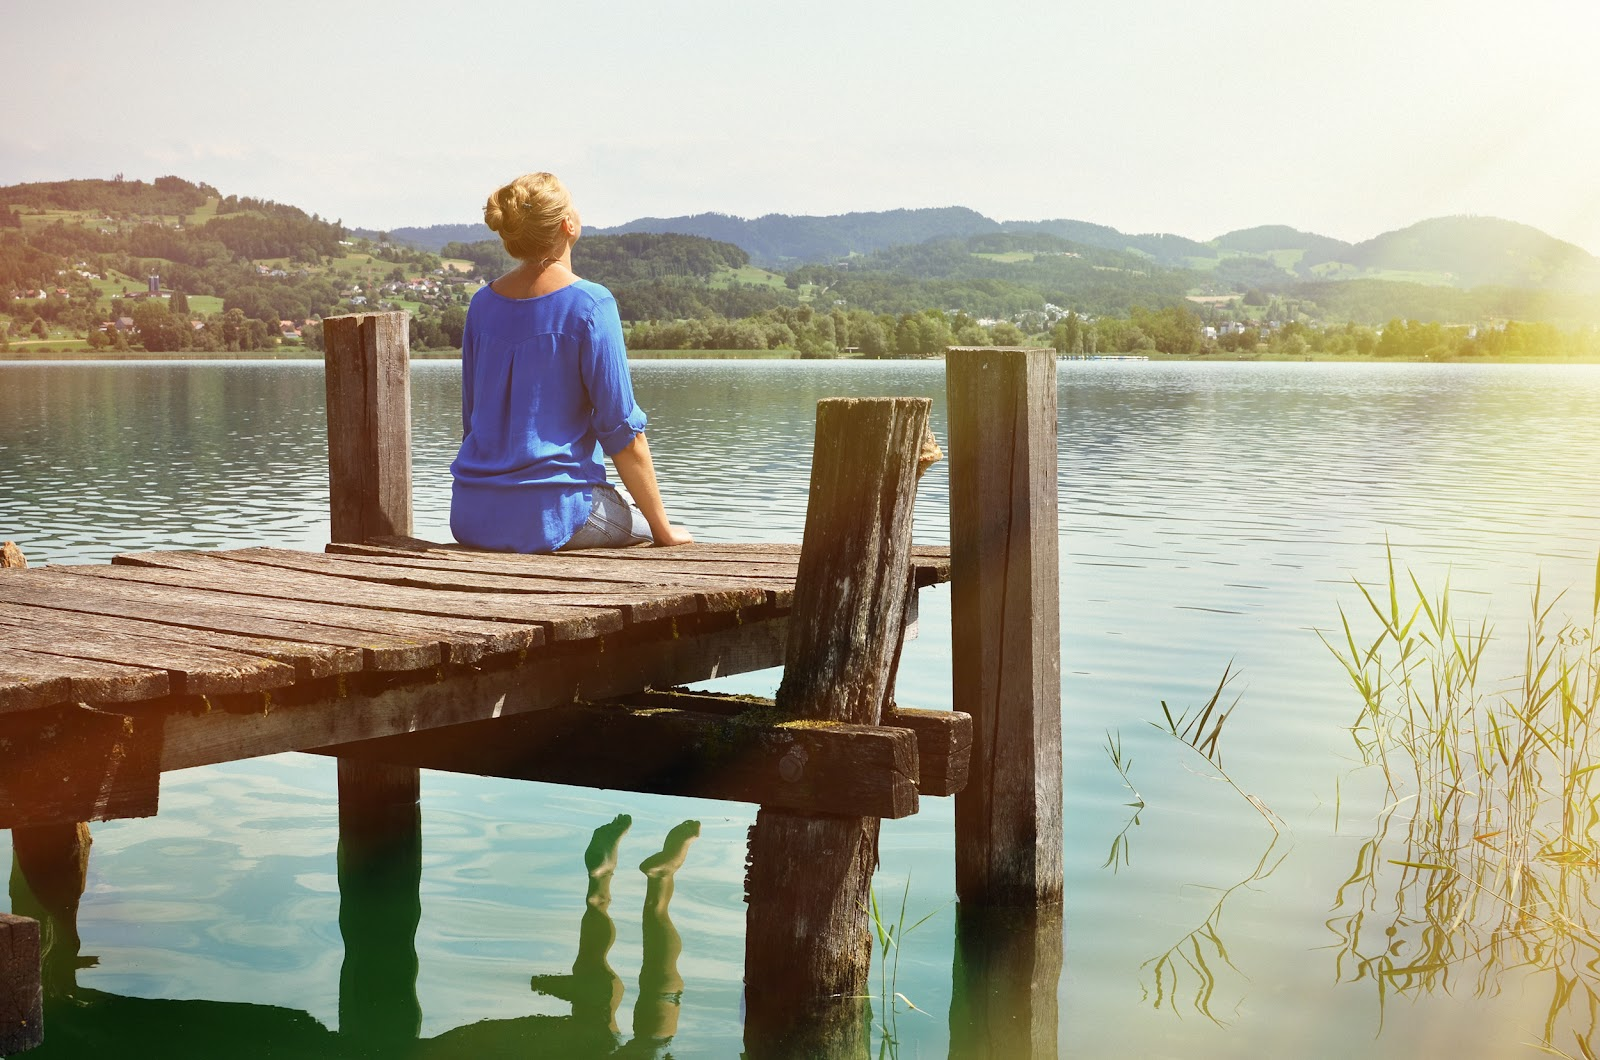 A woman sitting on a dock, enjoying the sun and nature